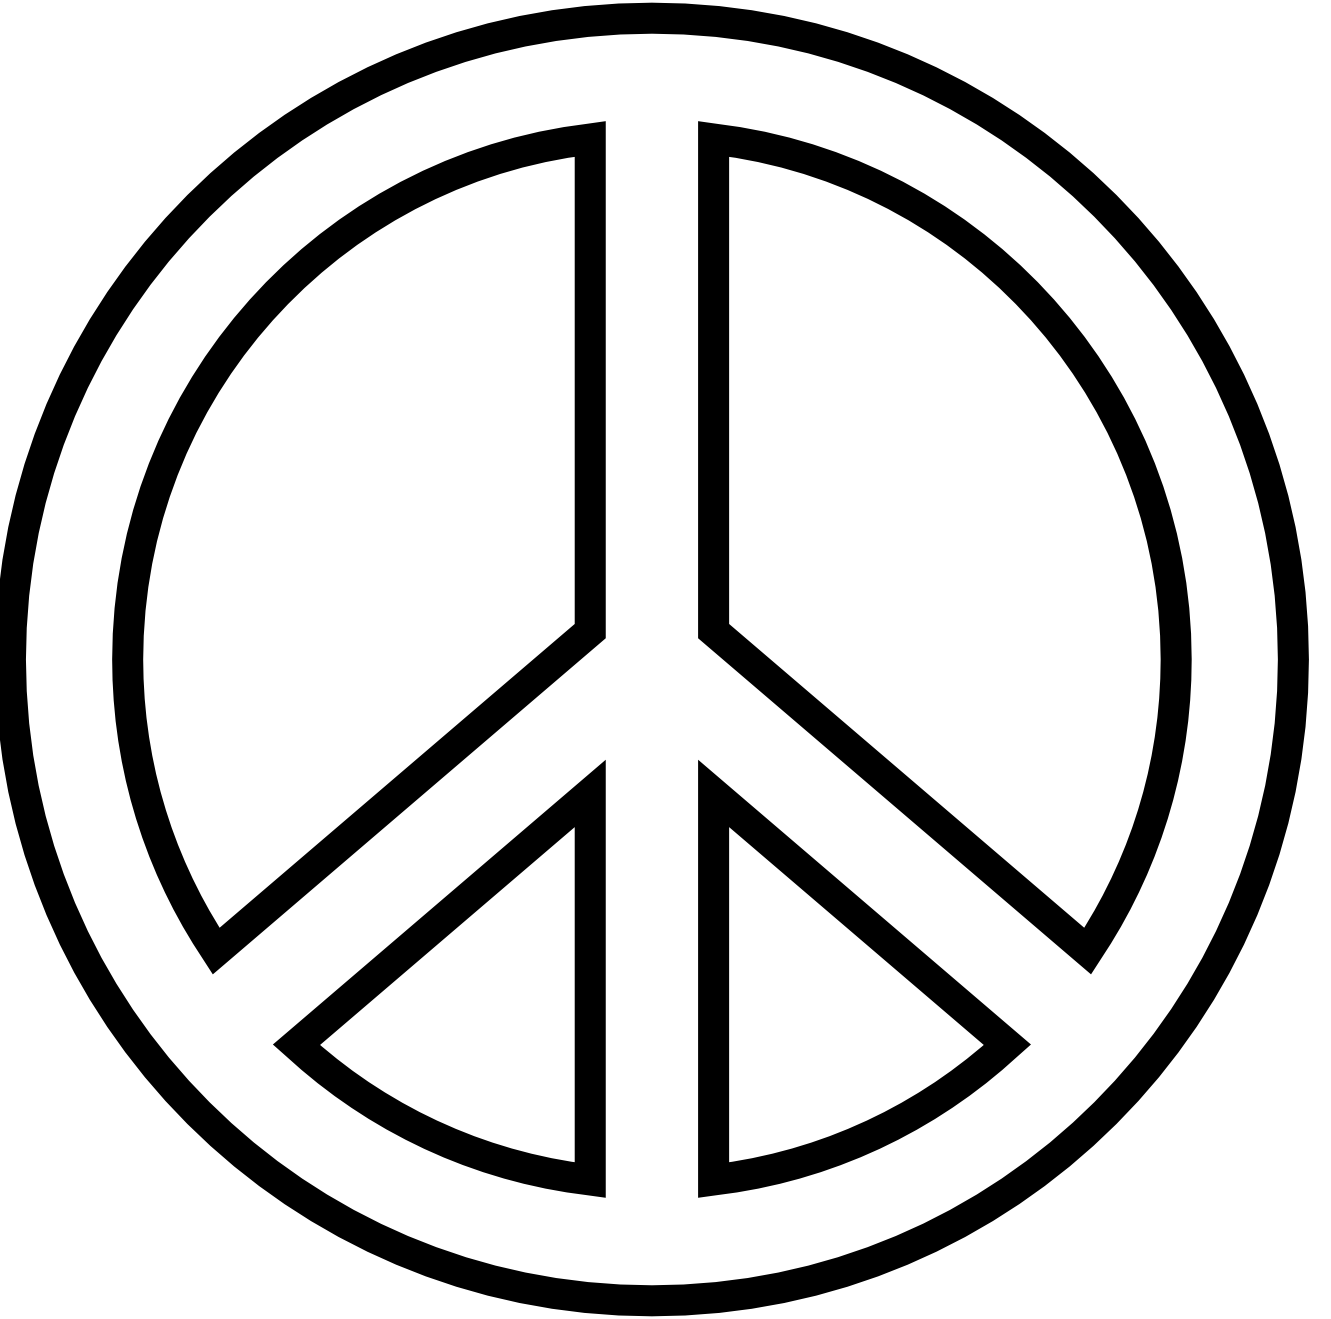 Peace Sign clipart simple Free xmas Art art white